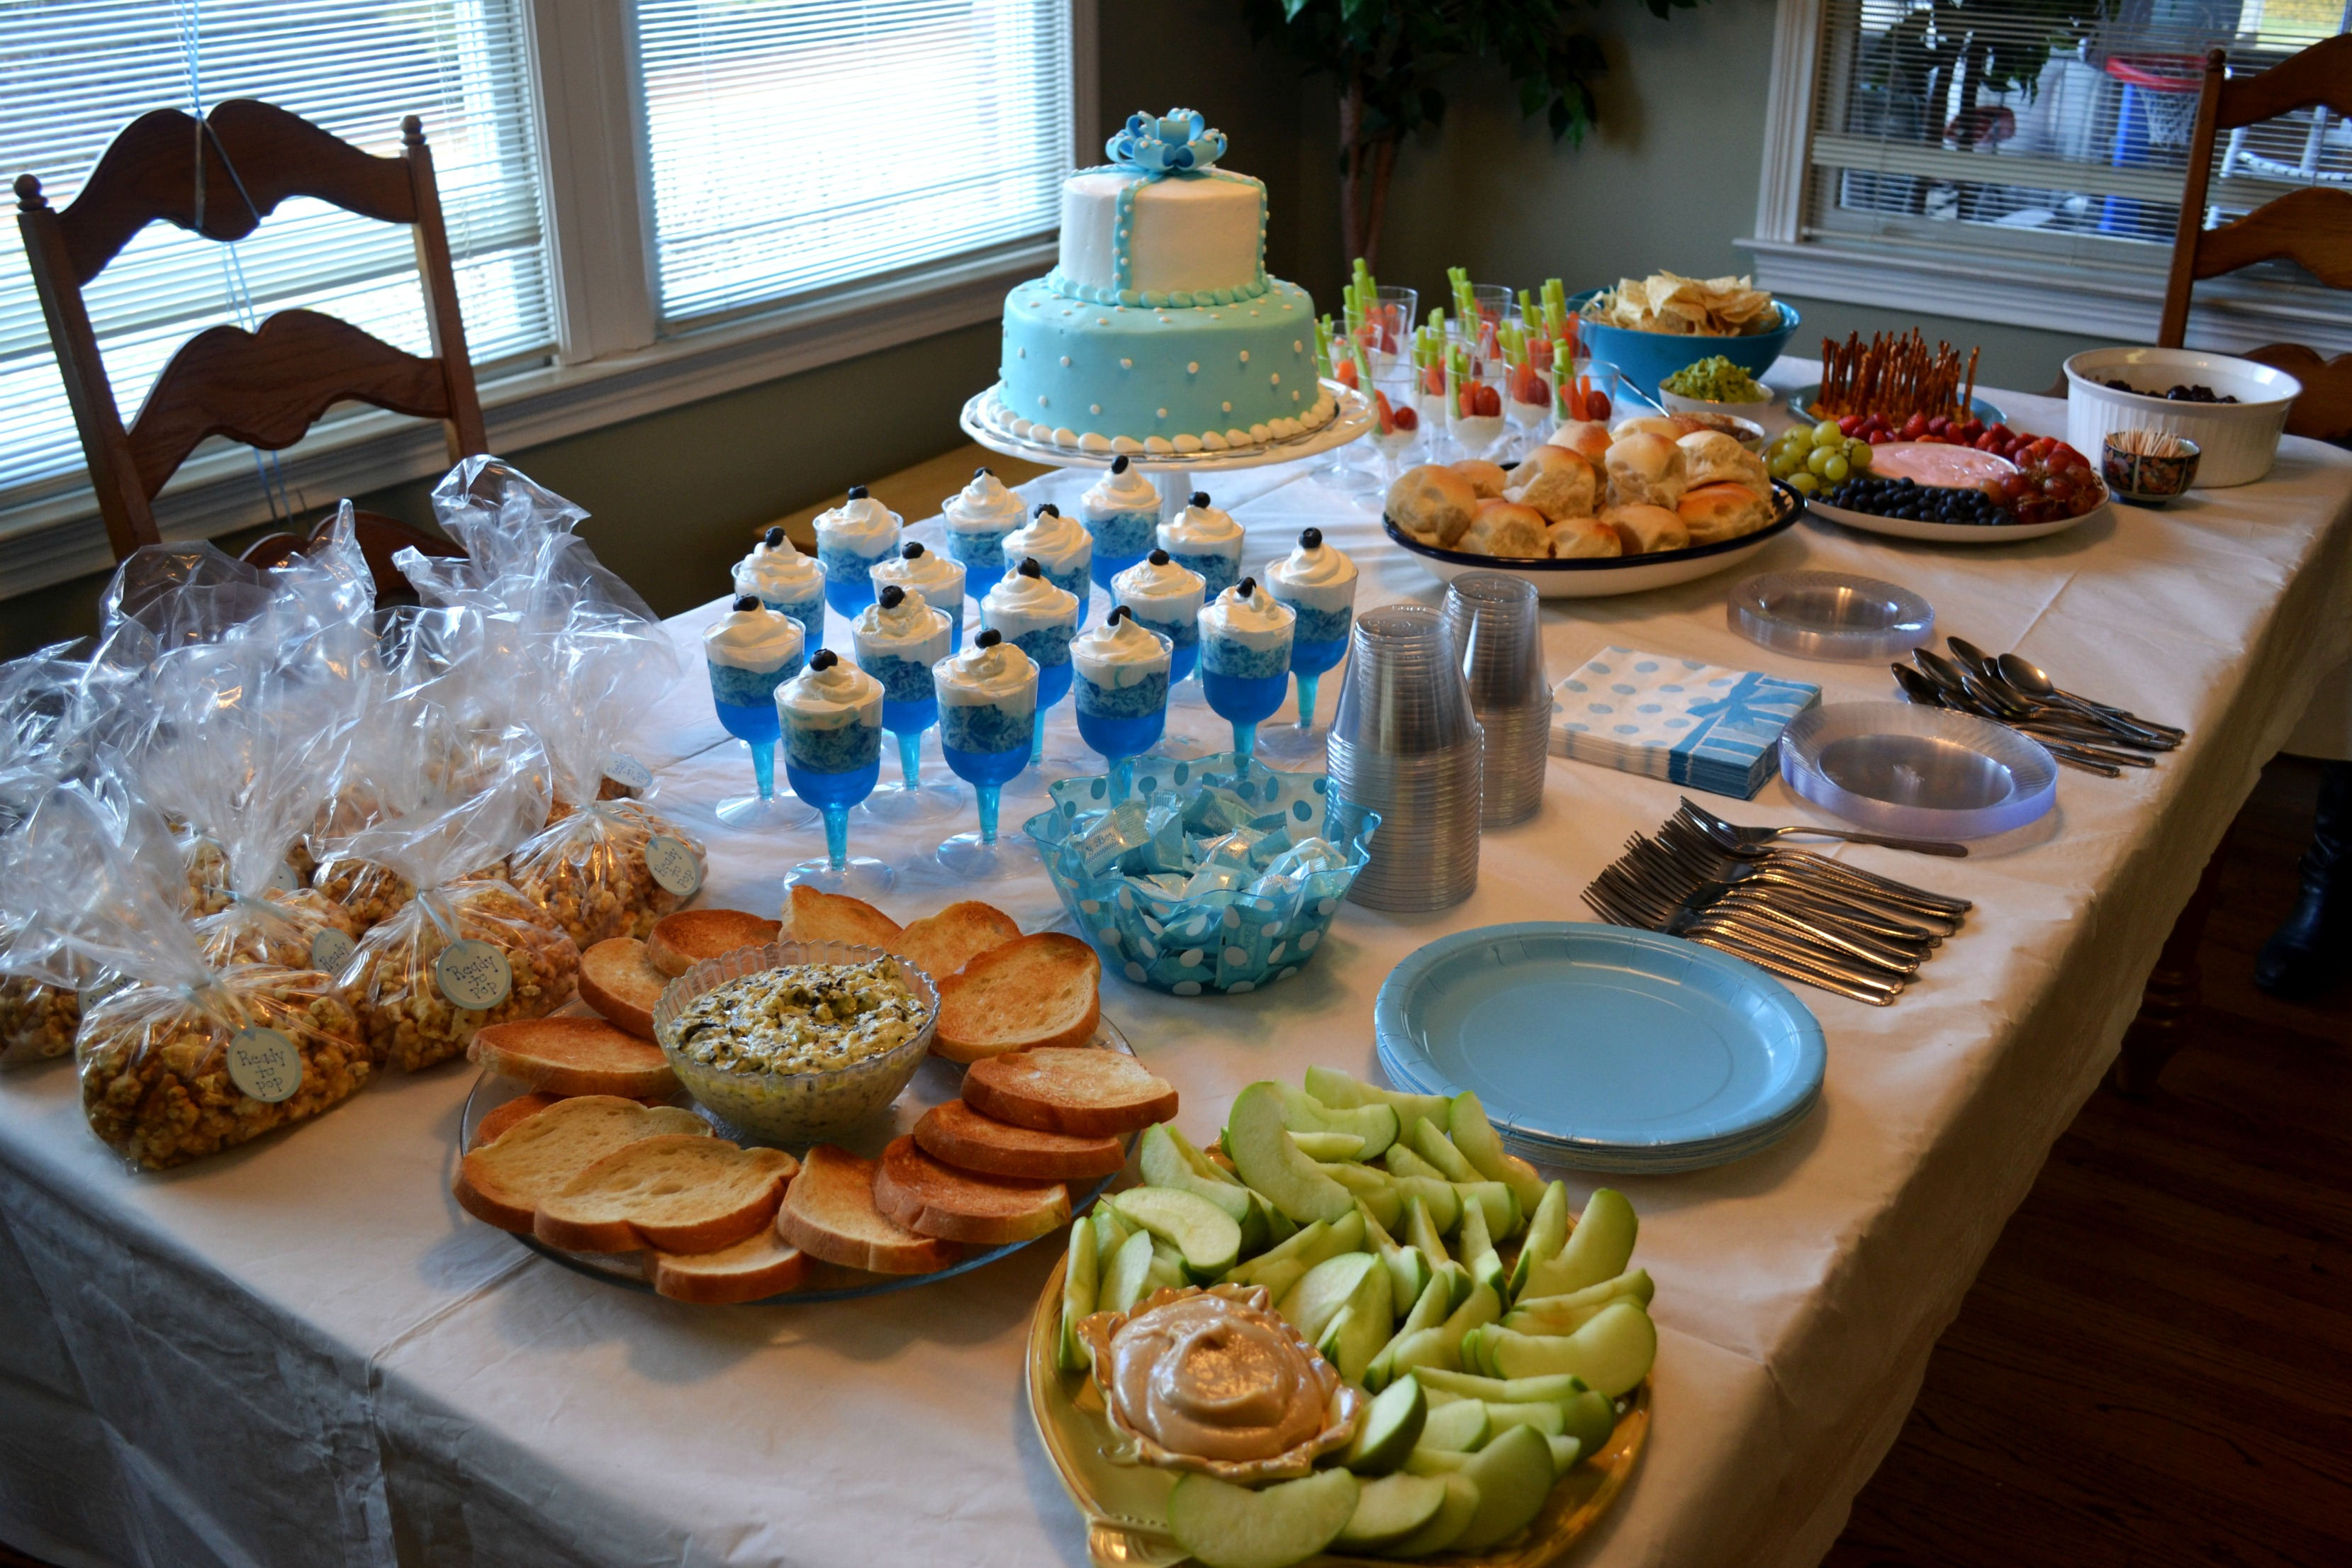 Modular Baby Shower Food Ideas For Boys | Baby Shower Ideas Gallery intended for Best of Baby Shower Food Ideas For Boy